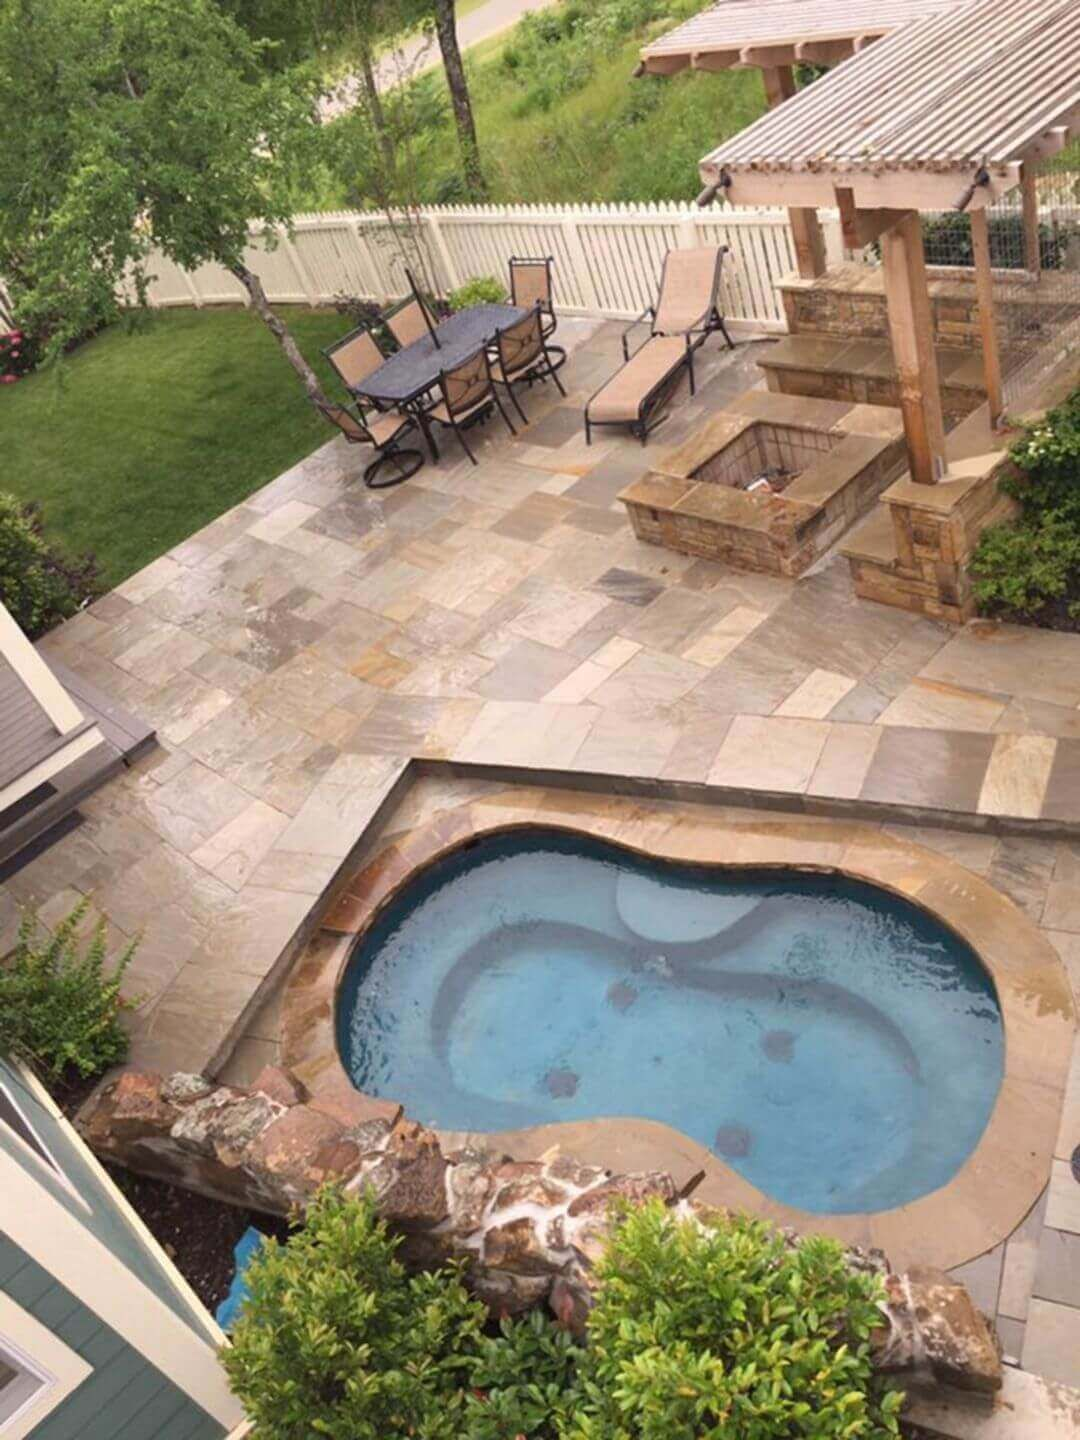 25 Outstanding Pool And Pergola Designs Small Pool Design Pools For Small Yards Small Backyard Pools